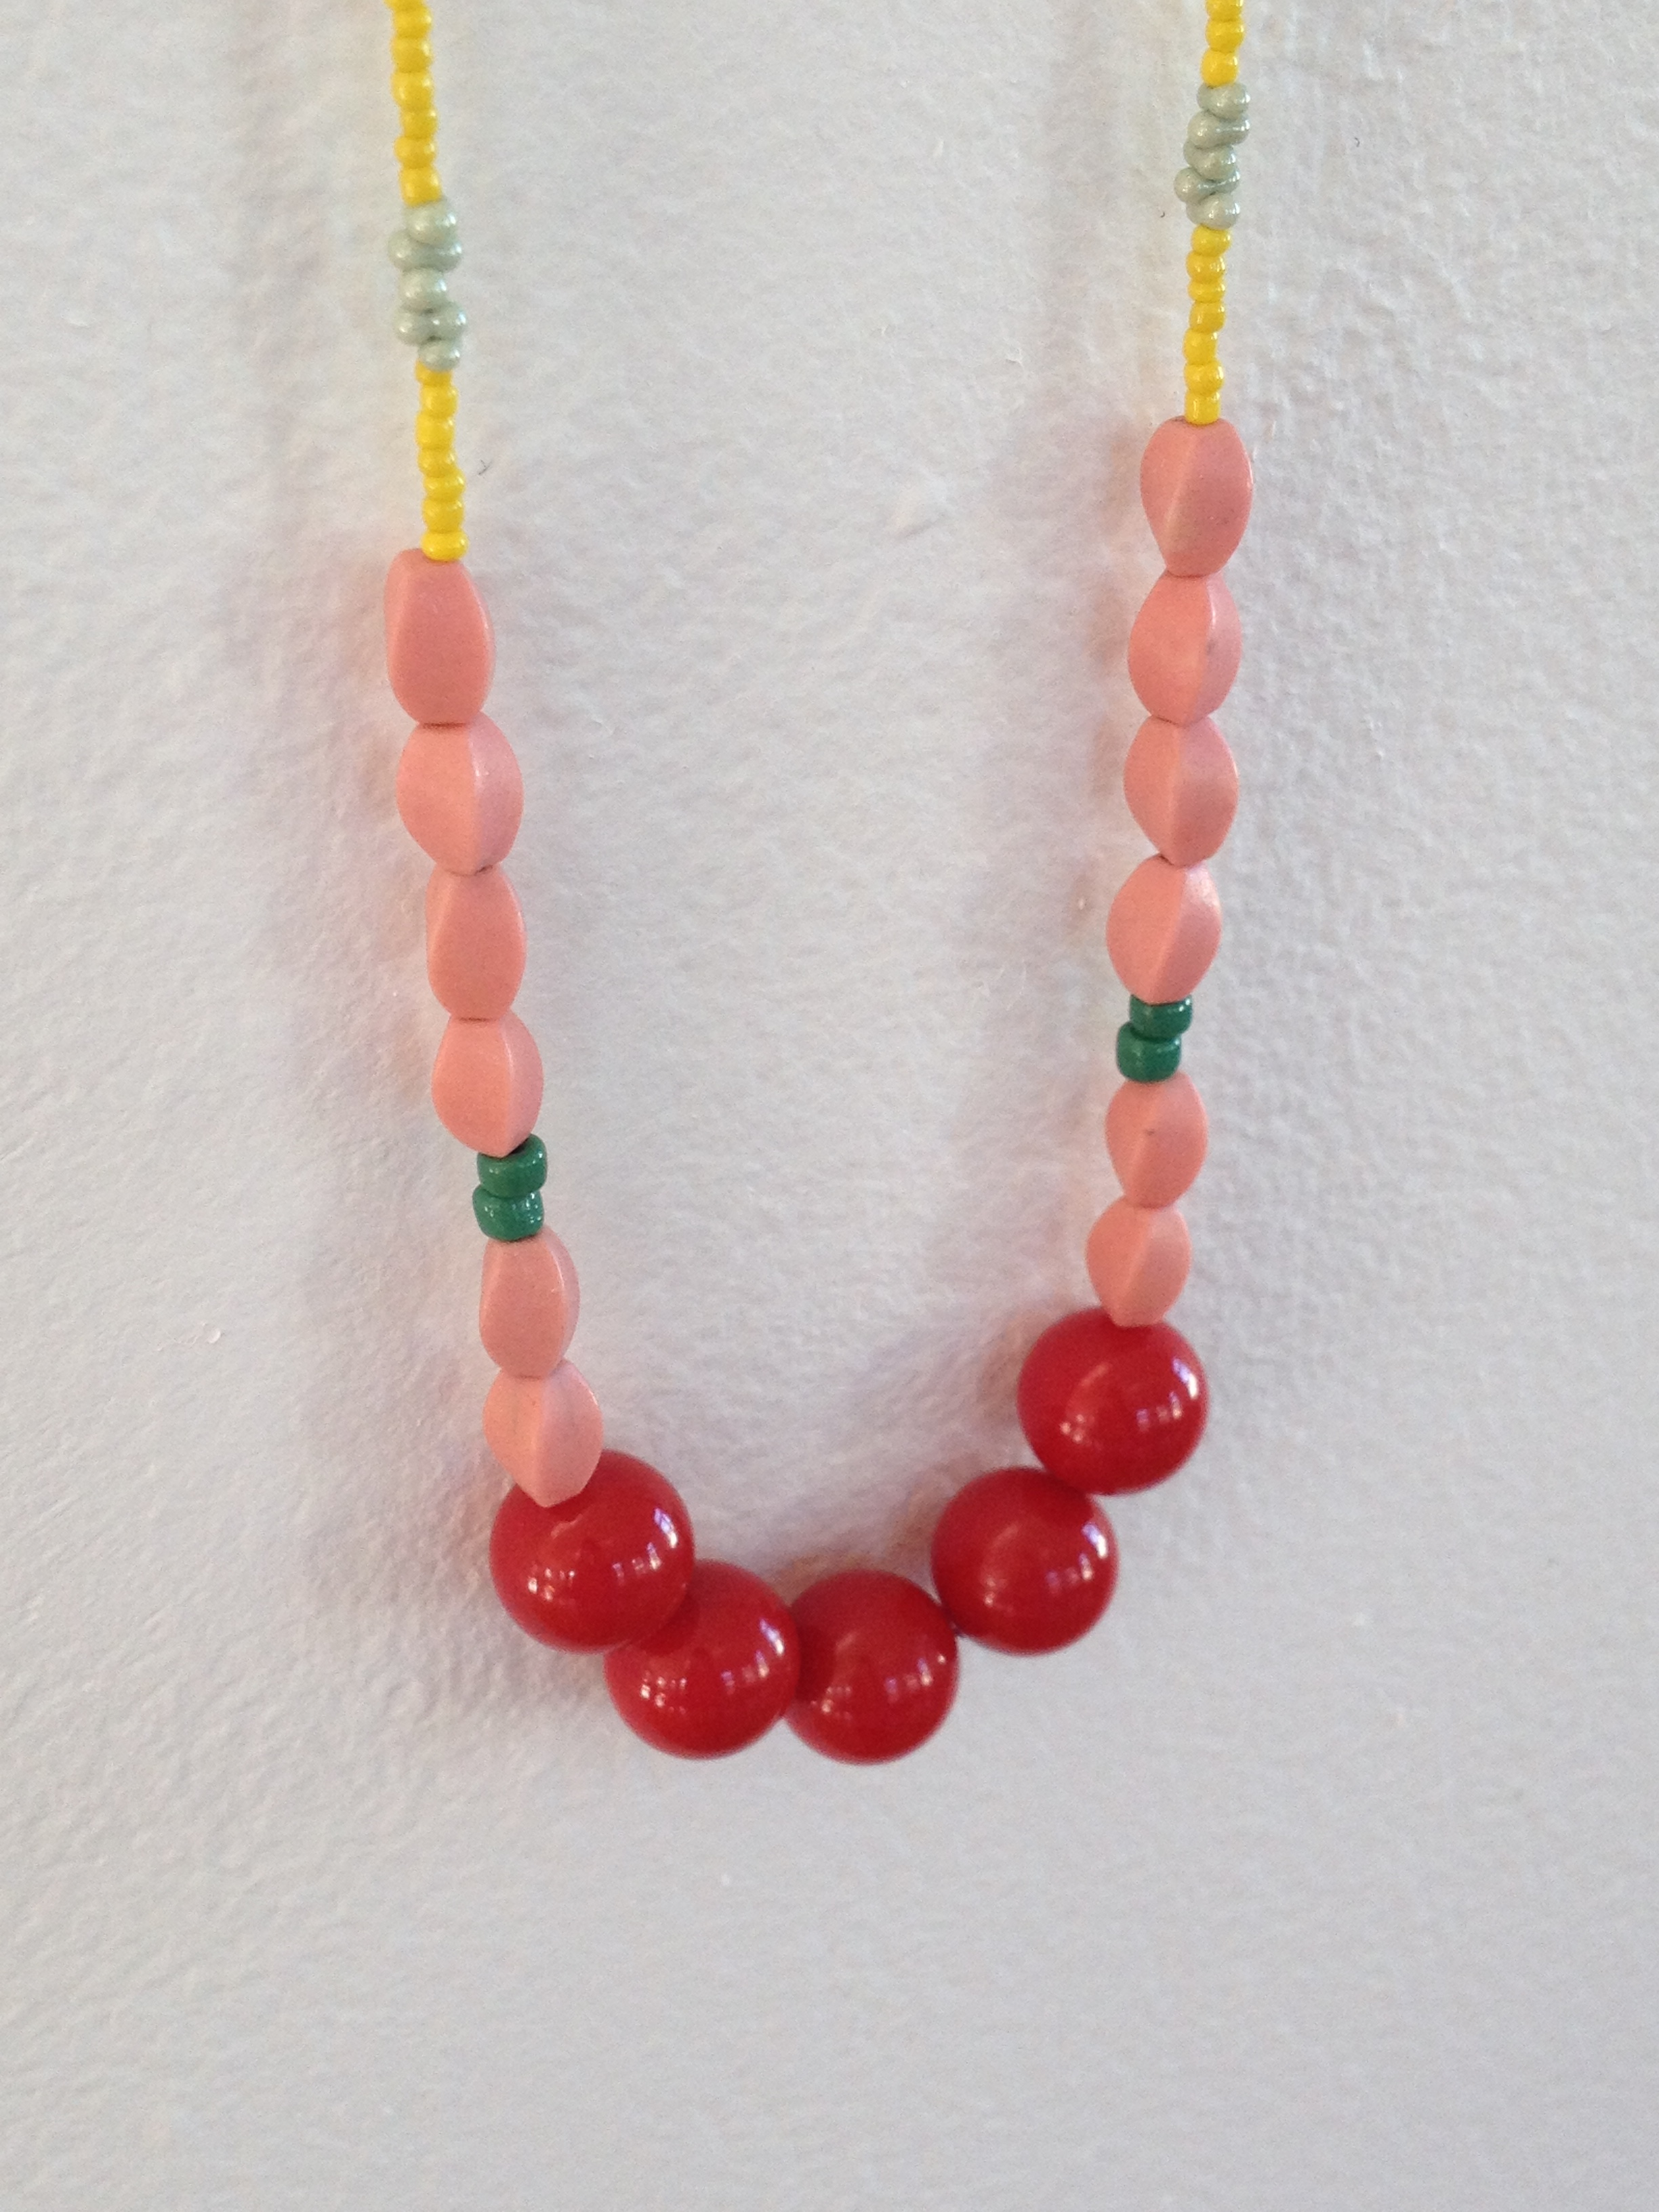 Bonbon_Necklace_16_detail.jpg